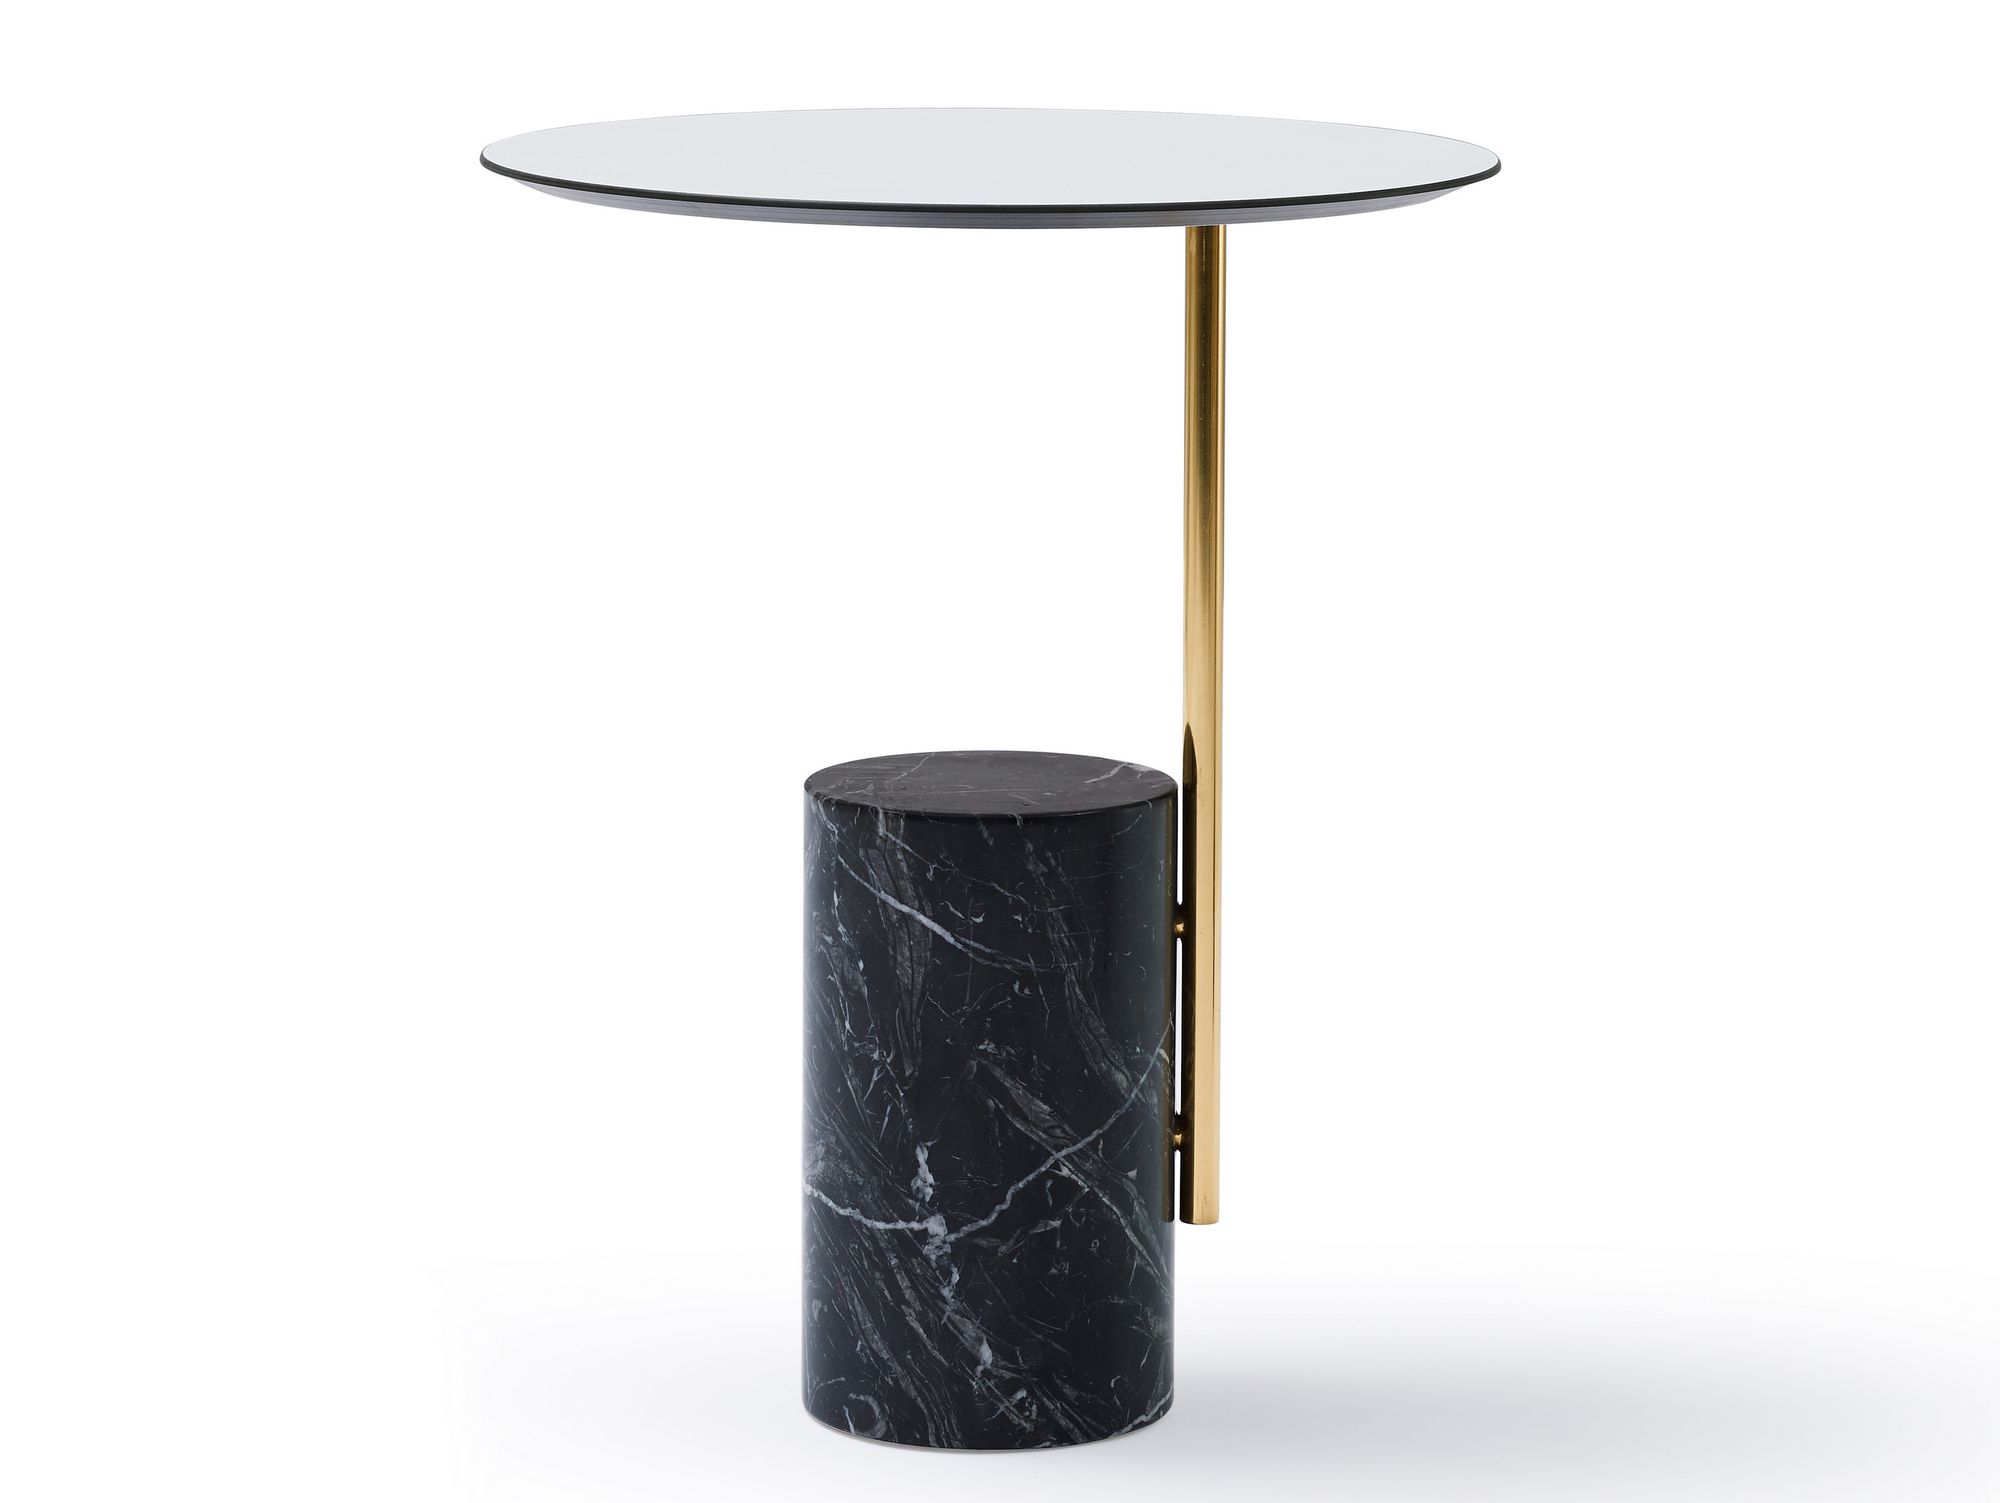 XAXAXA Carrara marble coffee table by Quinti Sedute design Ximo